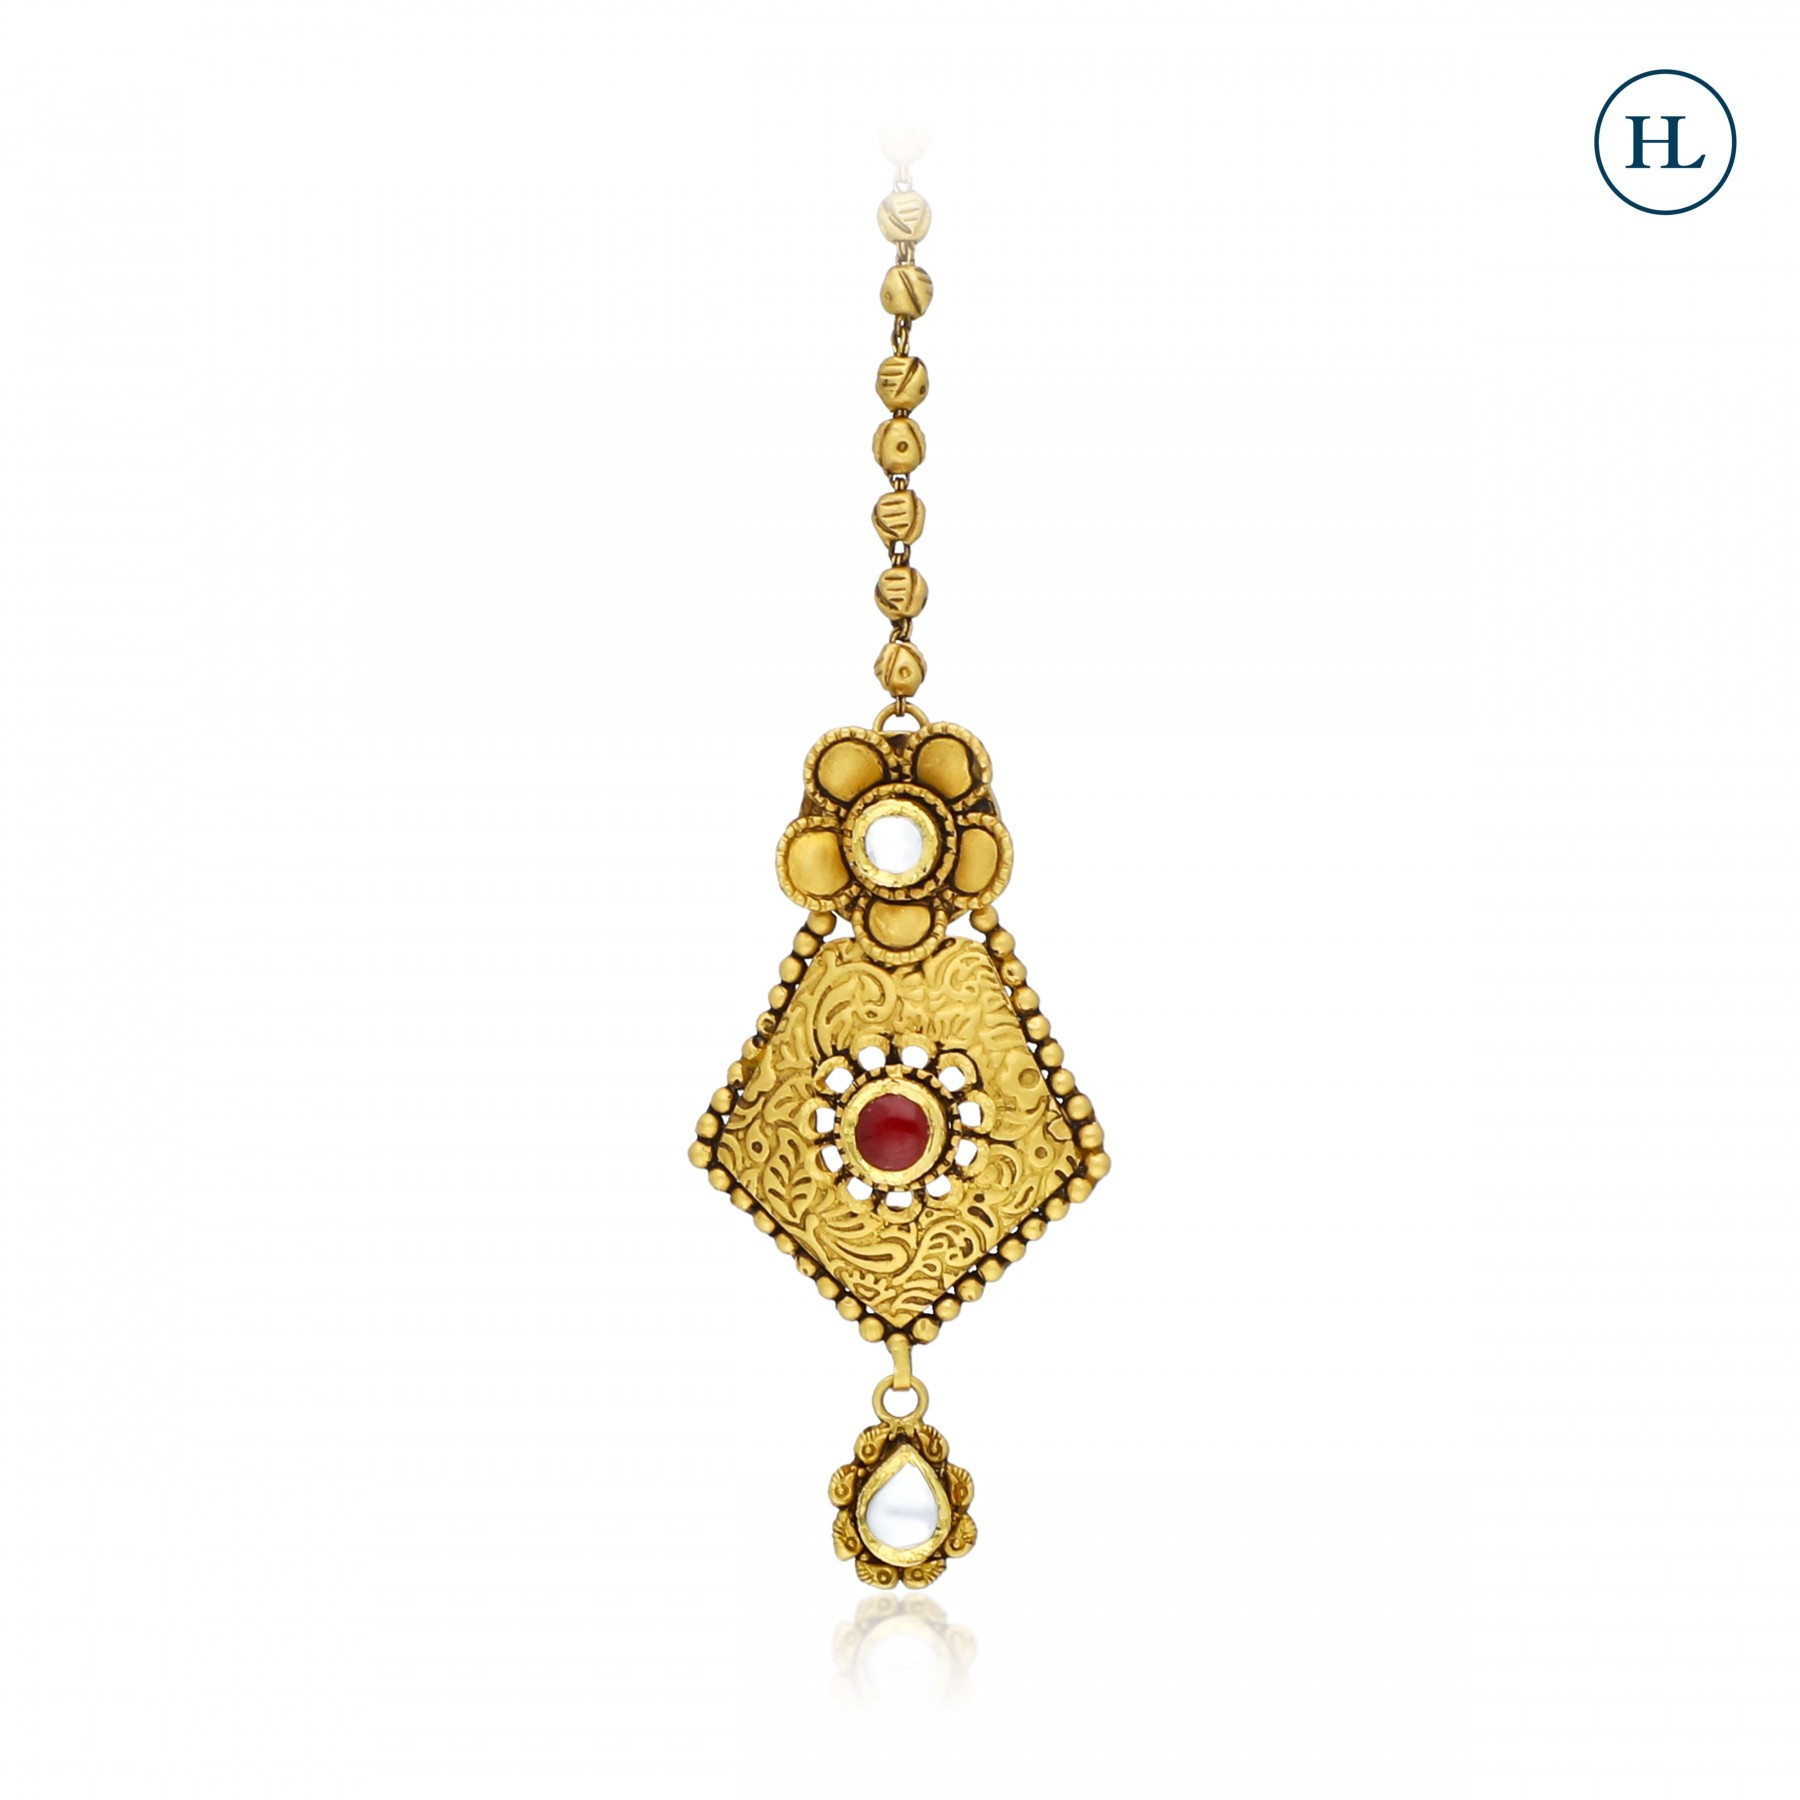 Antique-Styled Flower Gold Maang Tikka